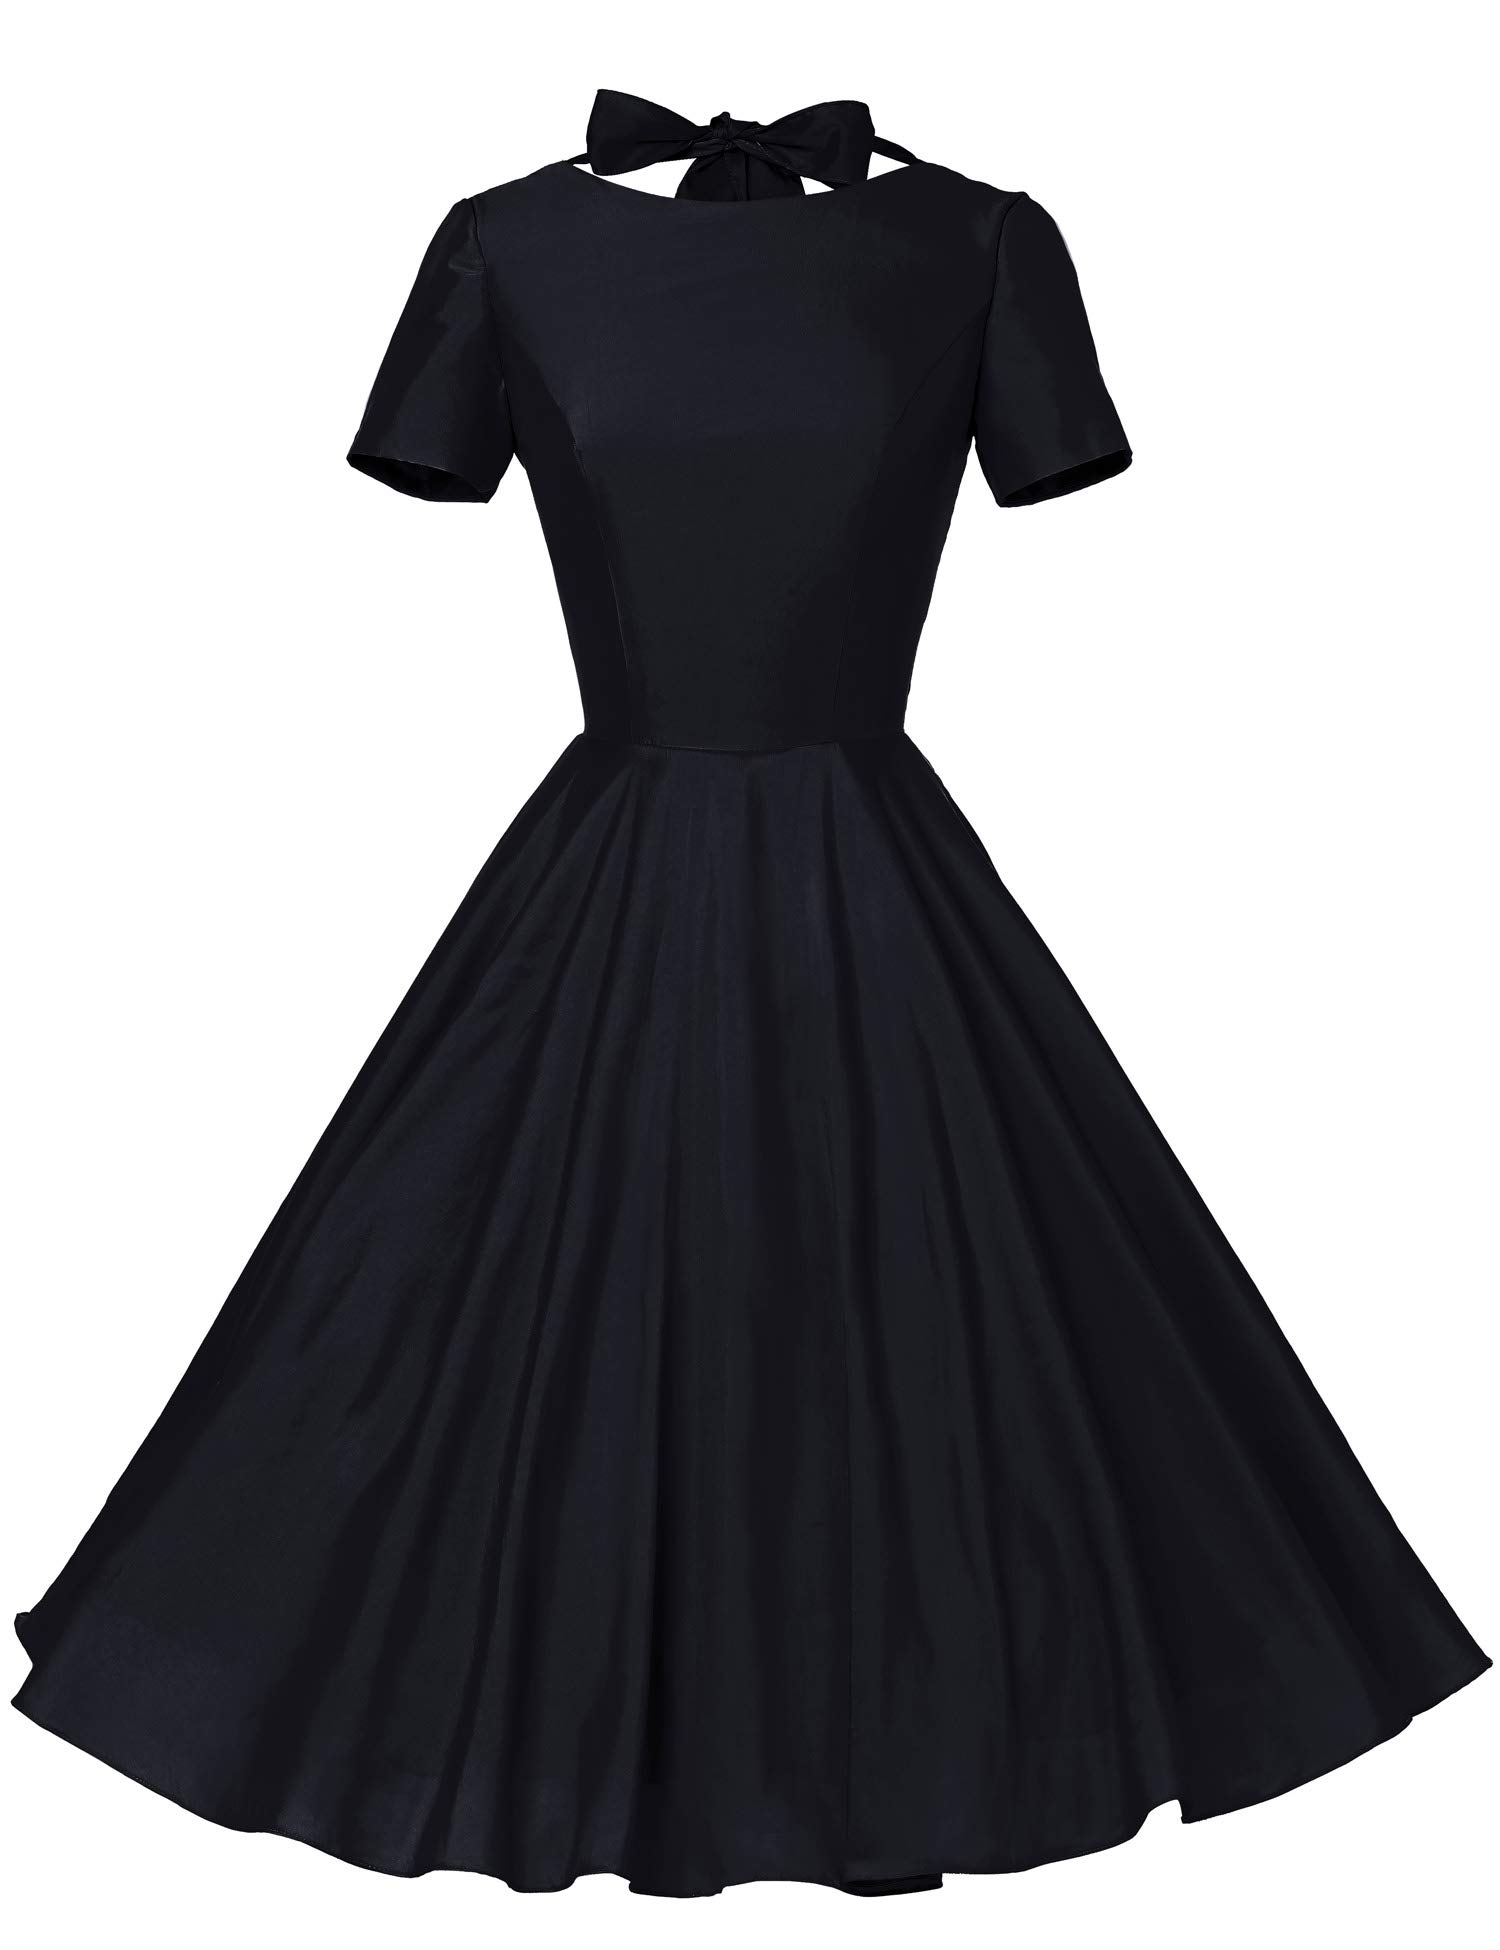 Available at Amazon: GownTown Women's 1950s Vintage Retro Party Swing Dress Rockabillty Stretchy Dress